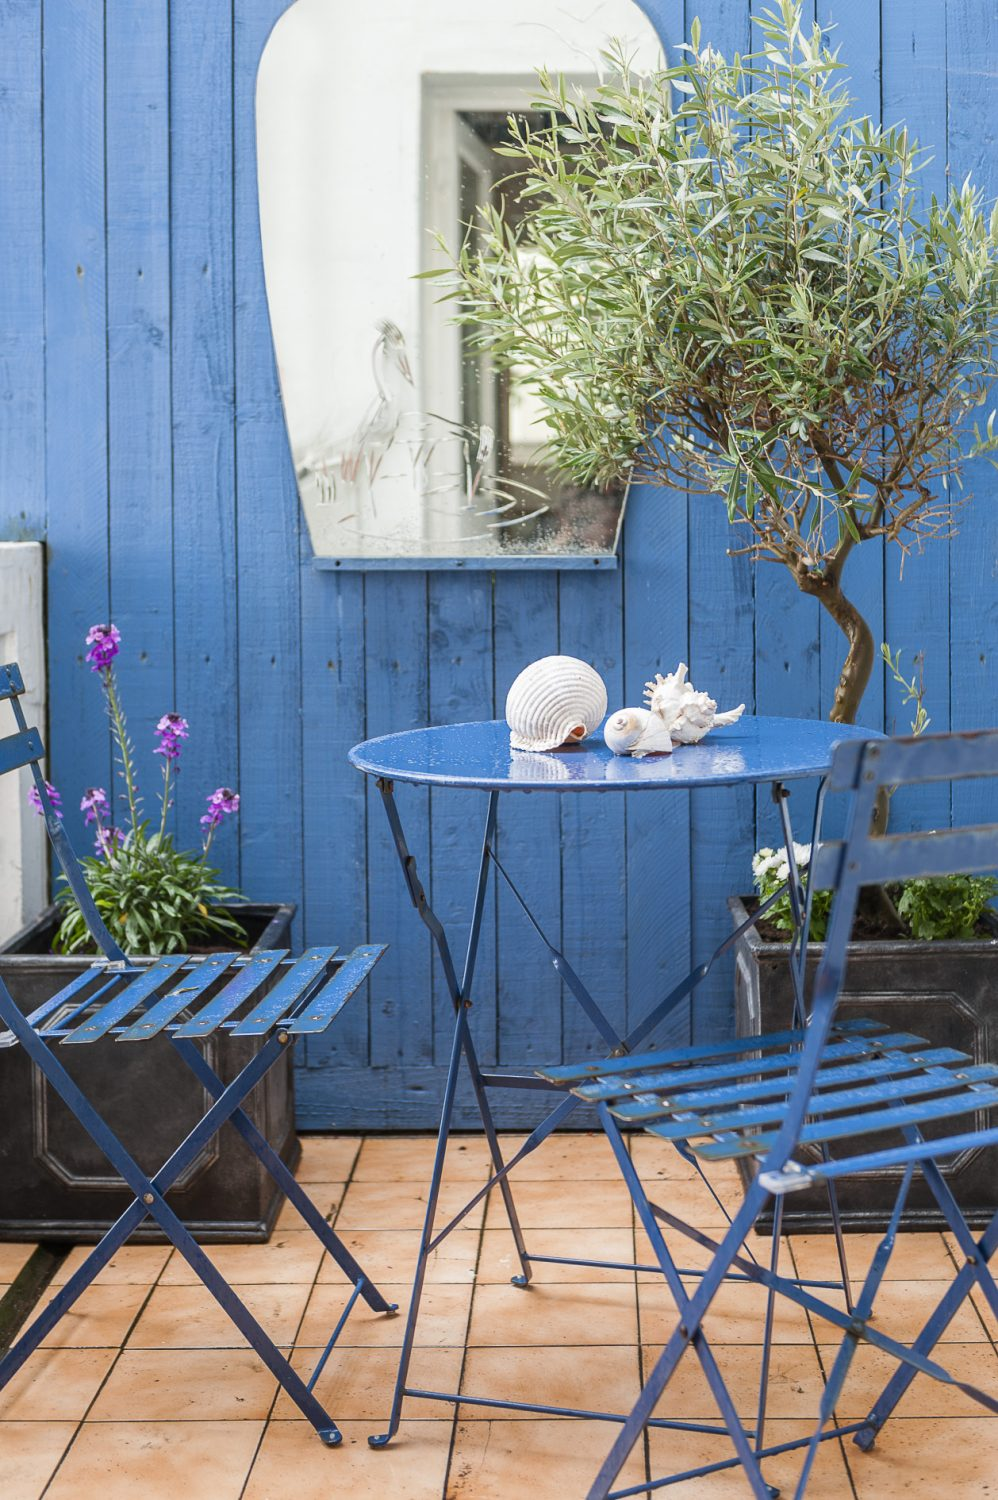 A utility area leads out onto a delightful balustraded balcony, one end panelled with tongue and groove painted a deep marine blue